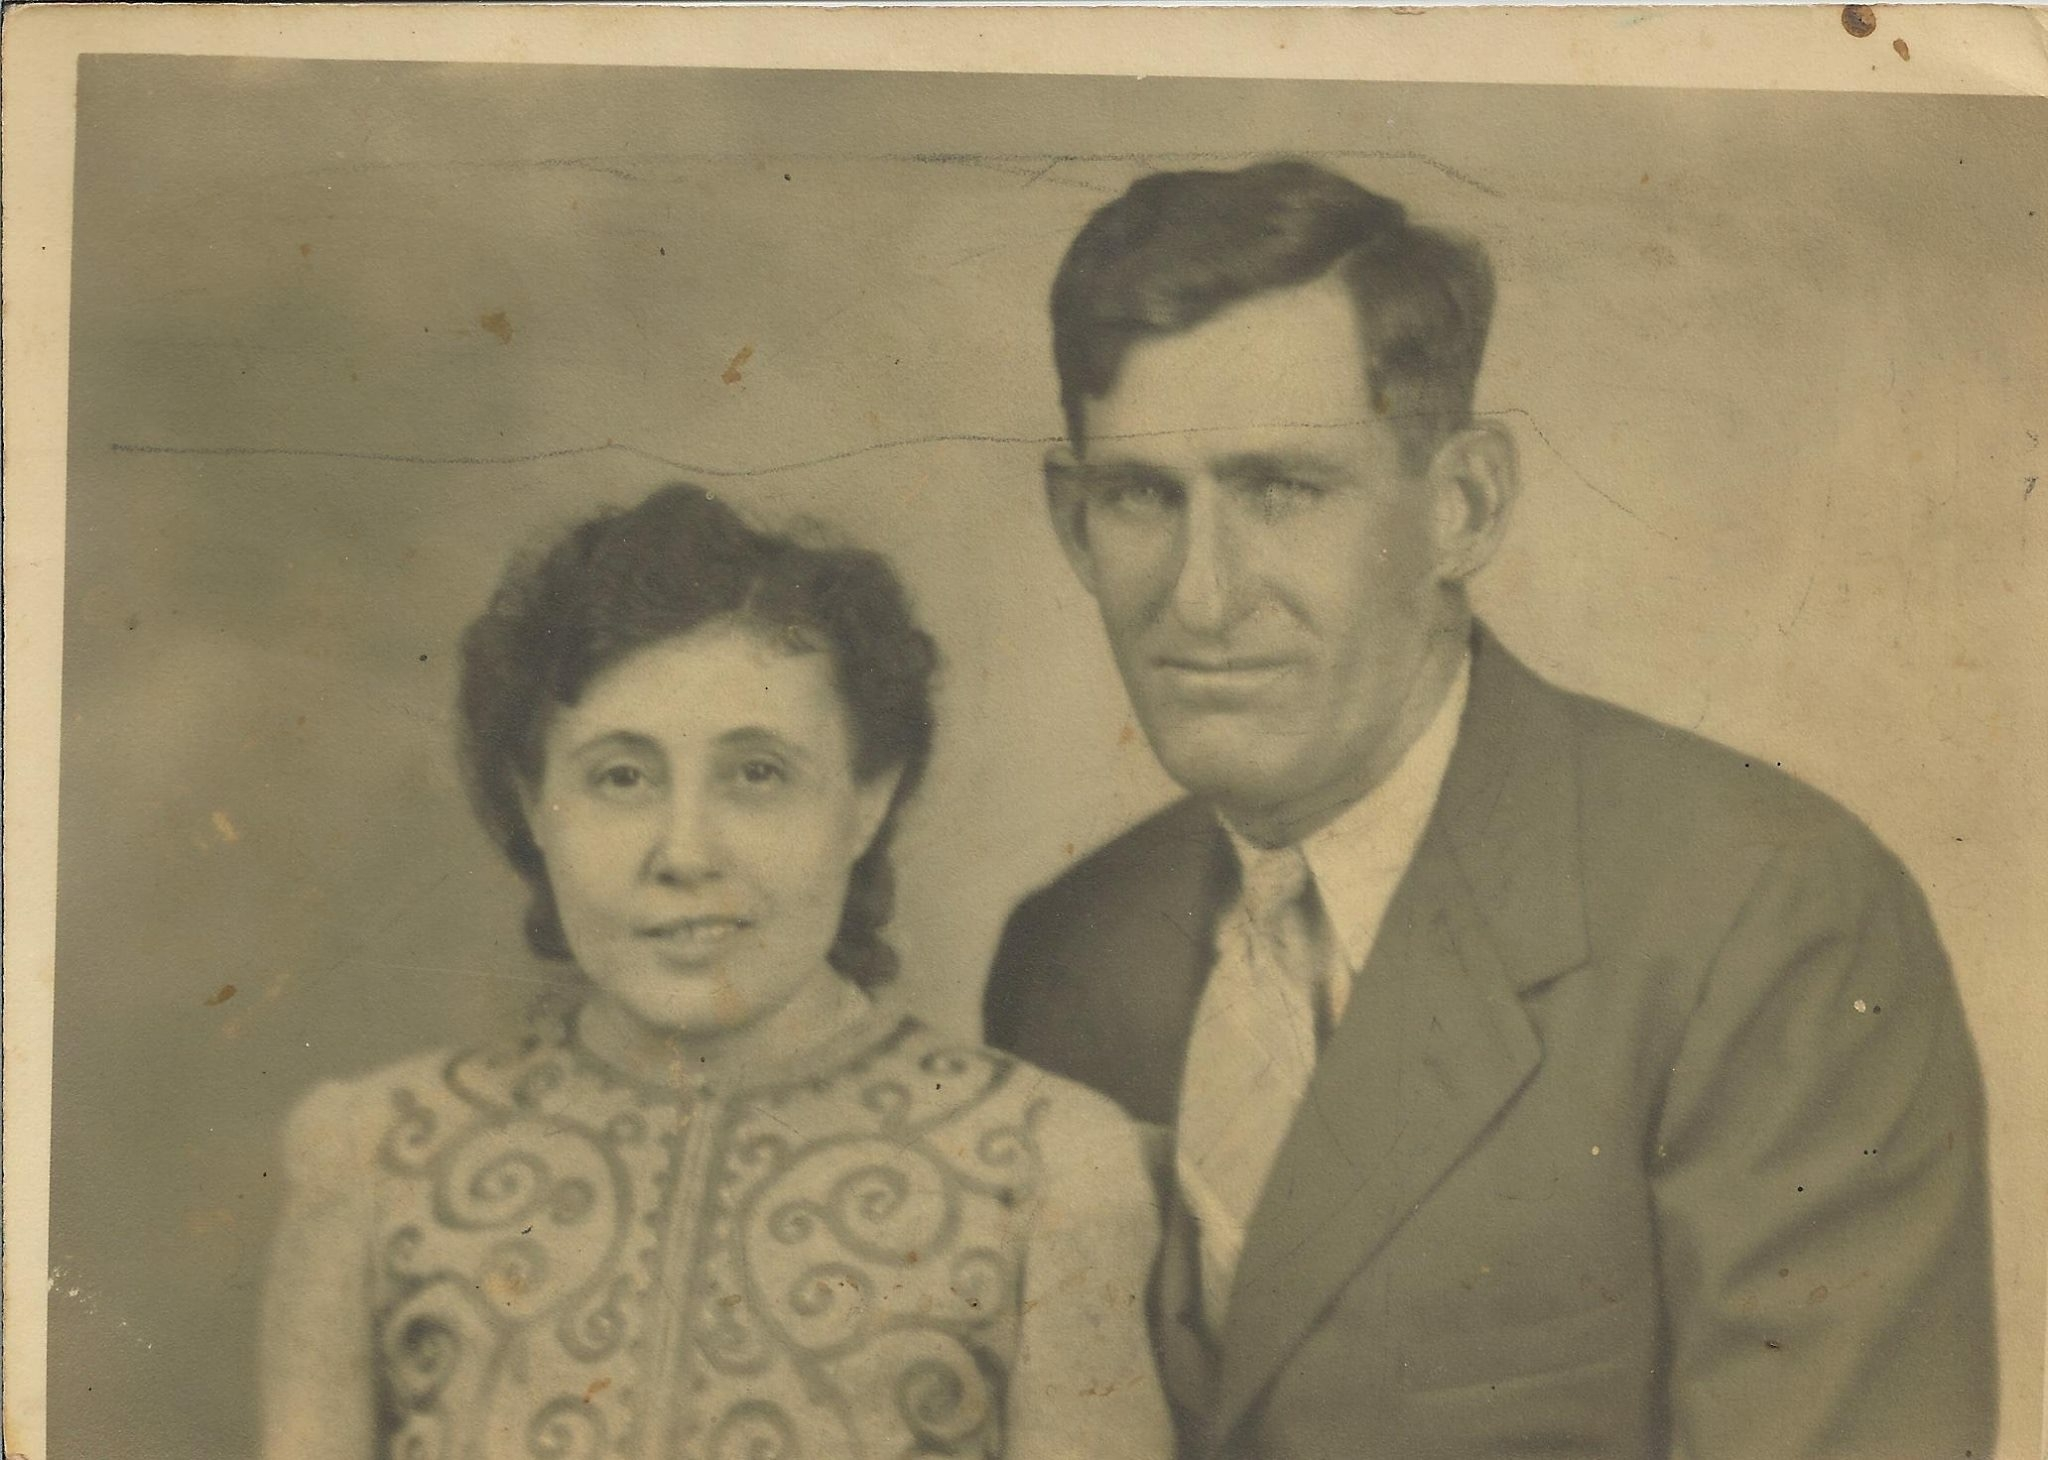 My great grandparents on my father's side...